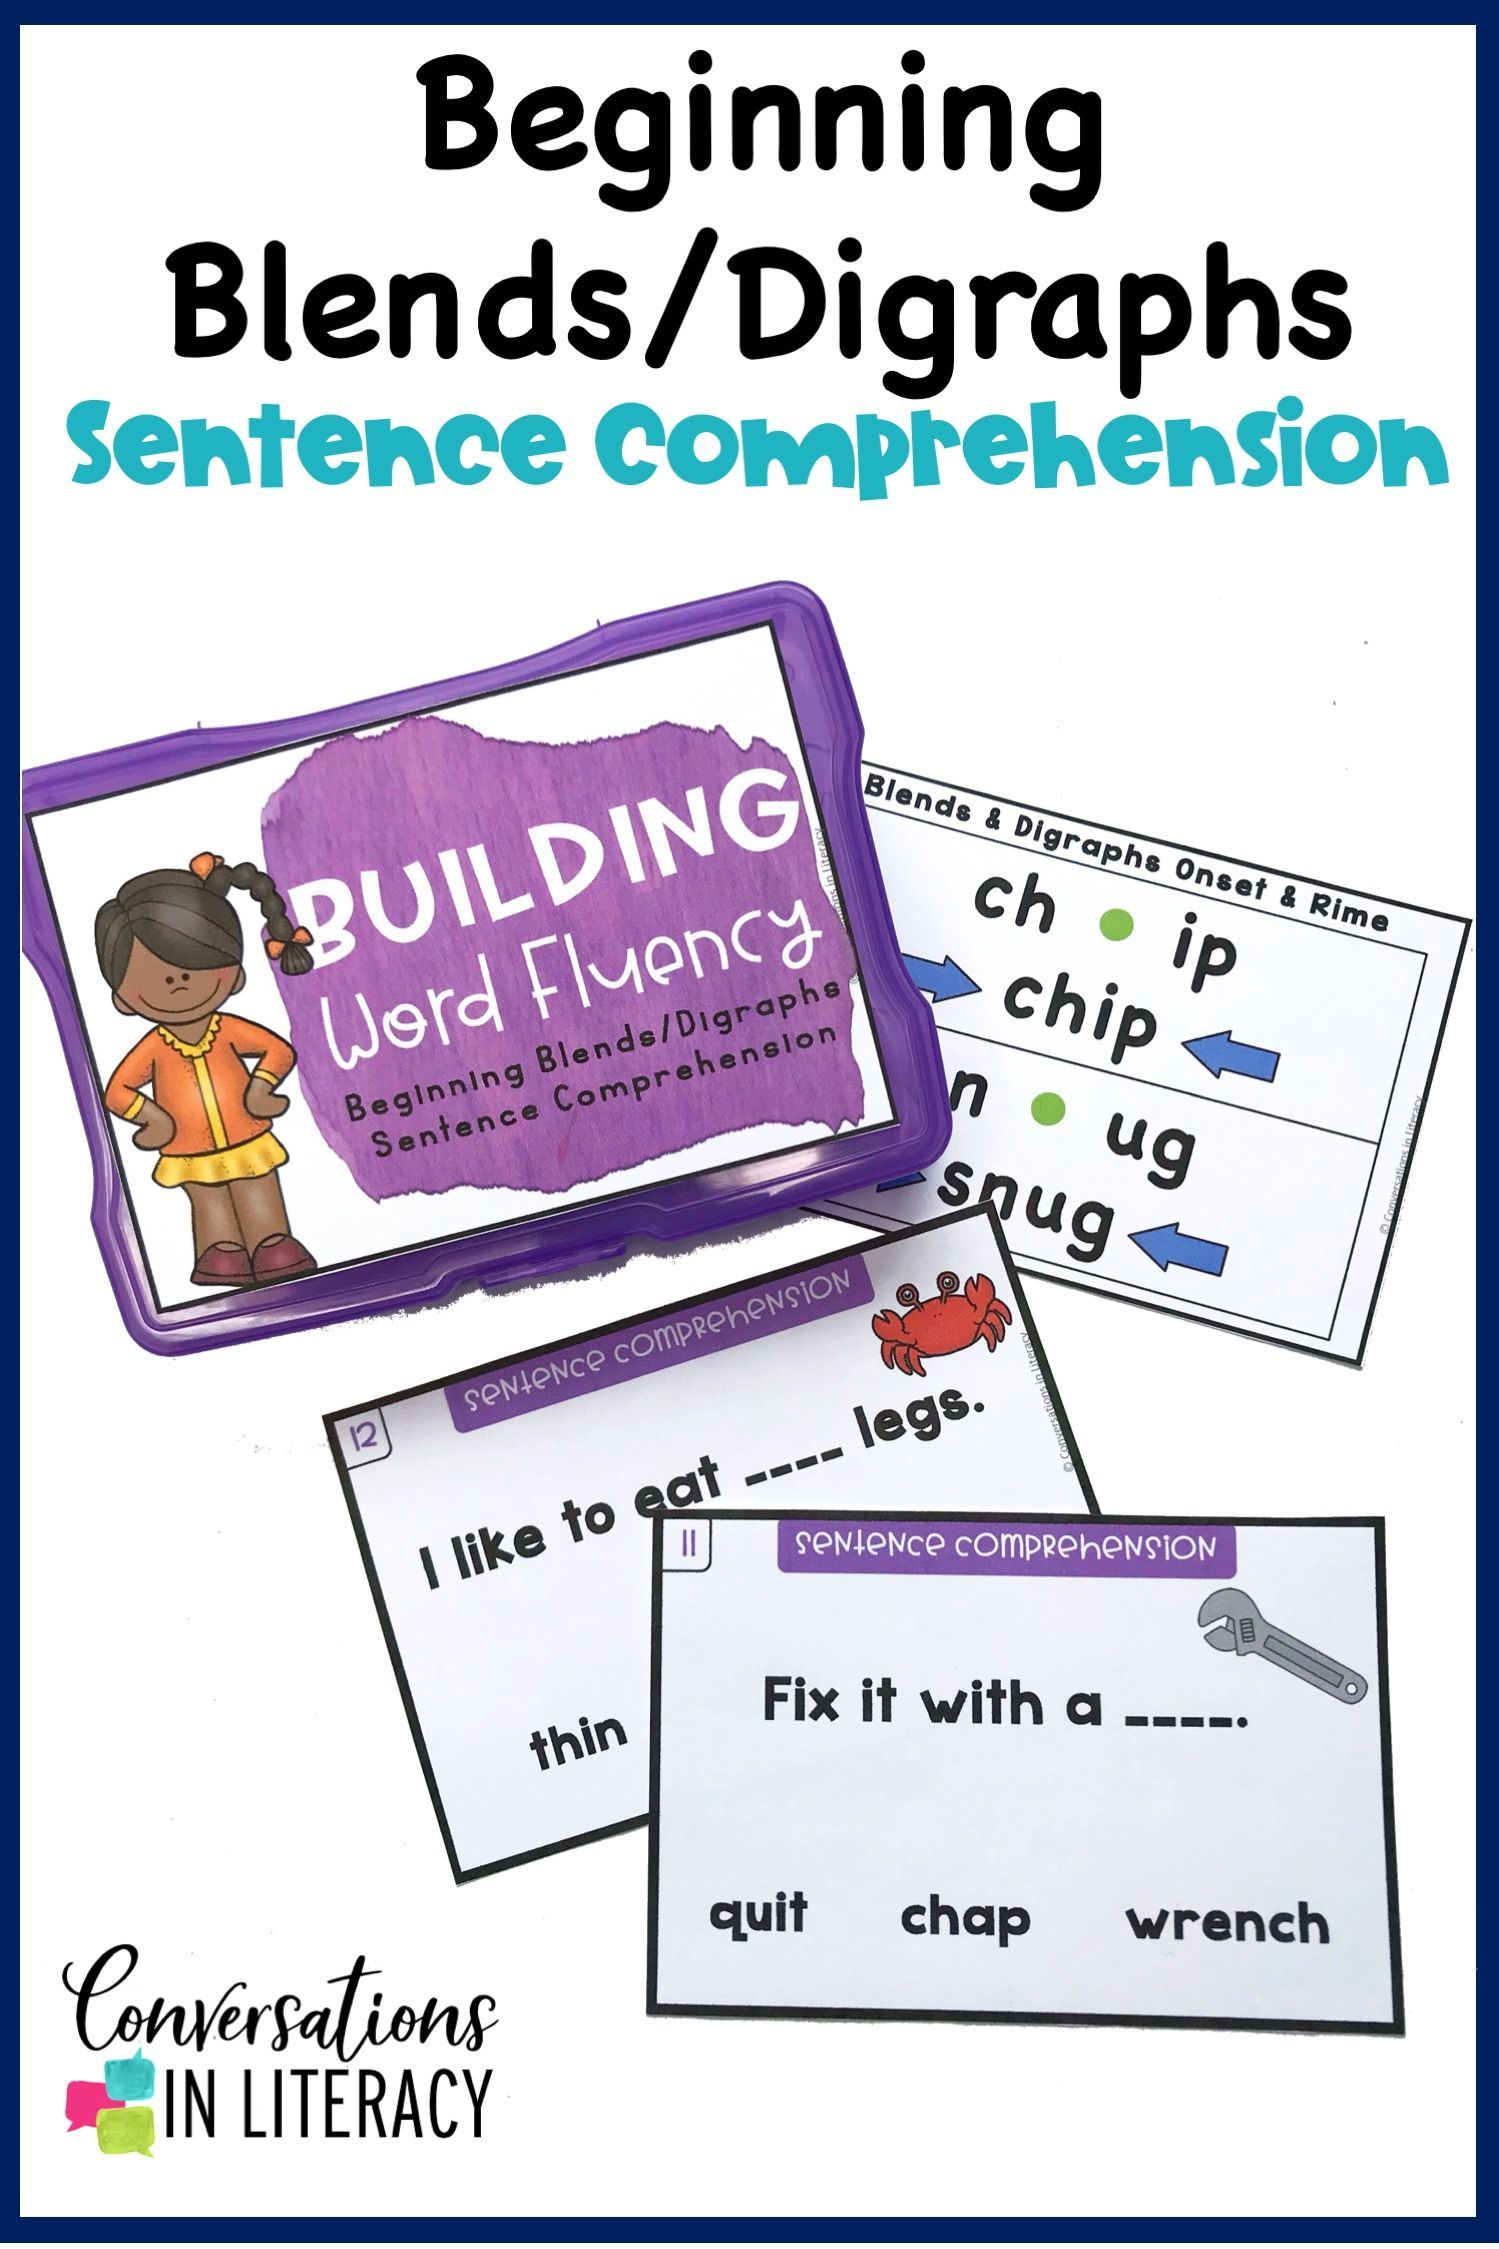 Blends And Digraphs Onset And Rime Building Word Fluency